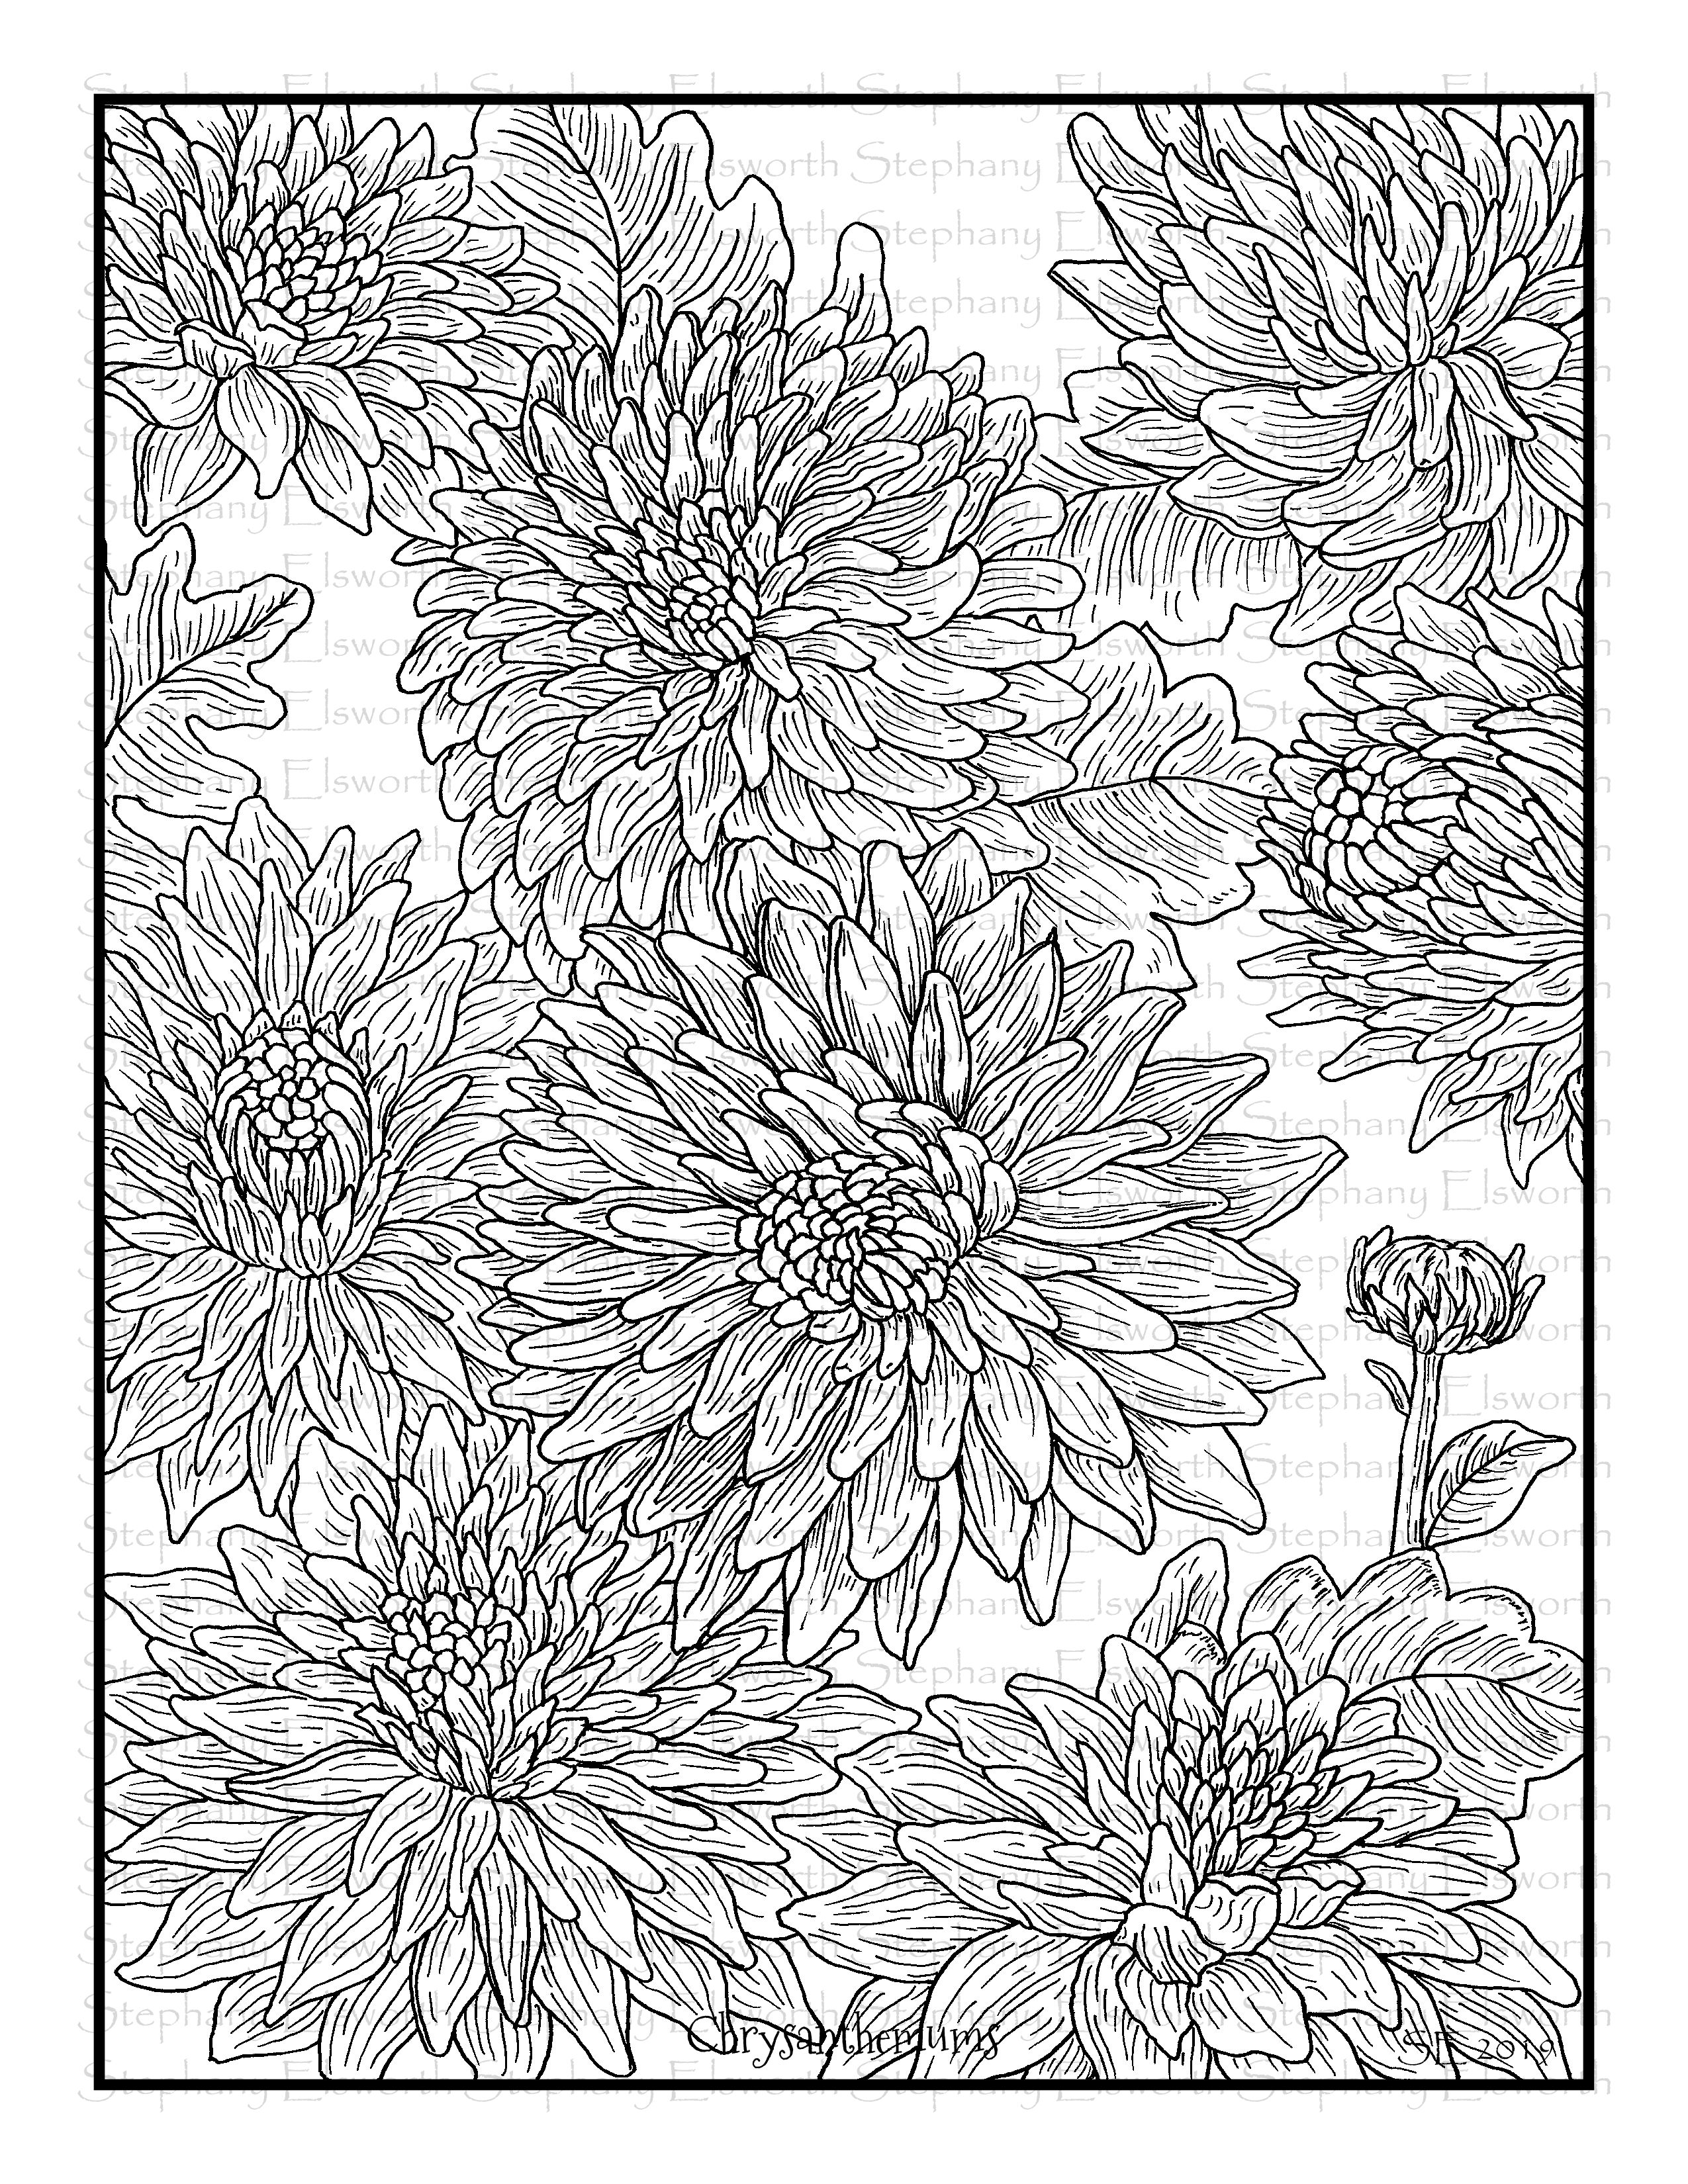 chrysanthemum coloring pages chrysanthemums printable coloring page color with steph coloring chrysanthemum pages